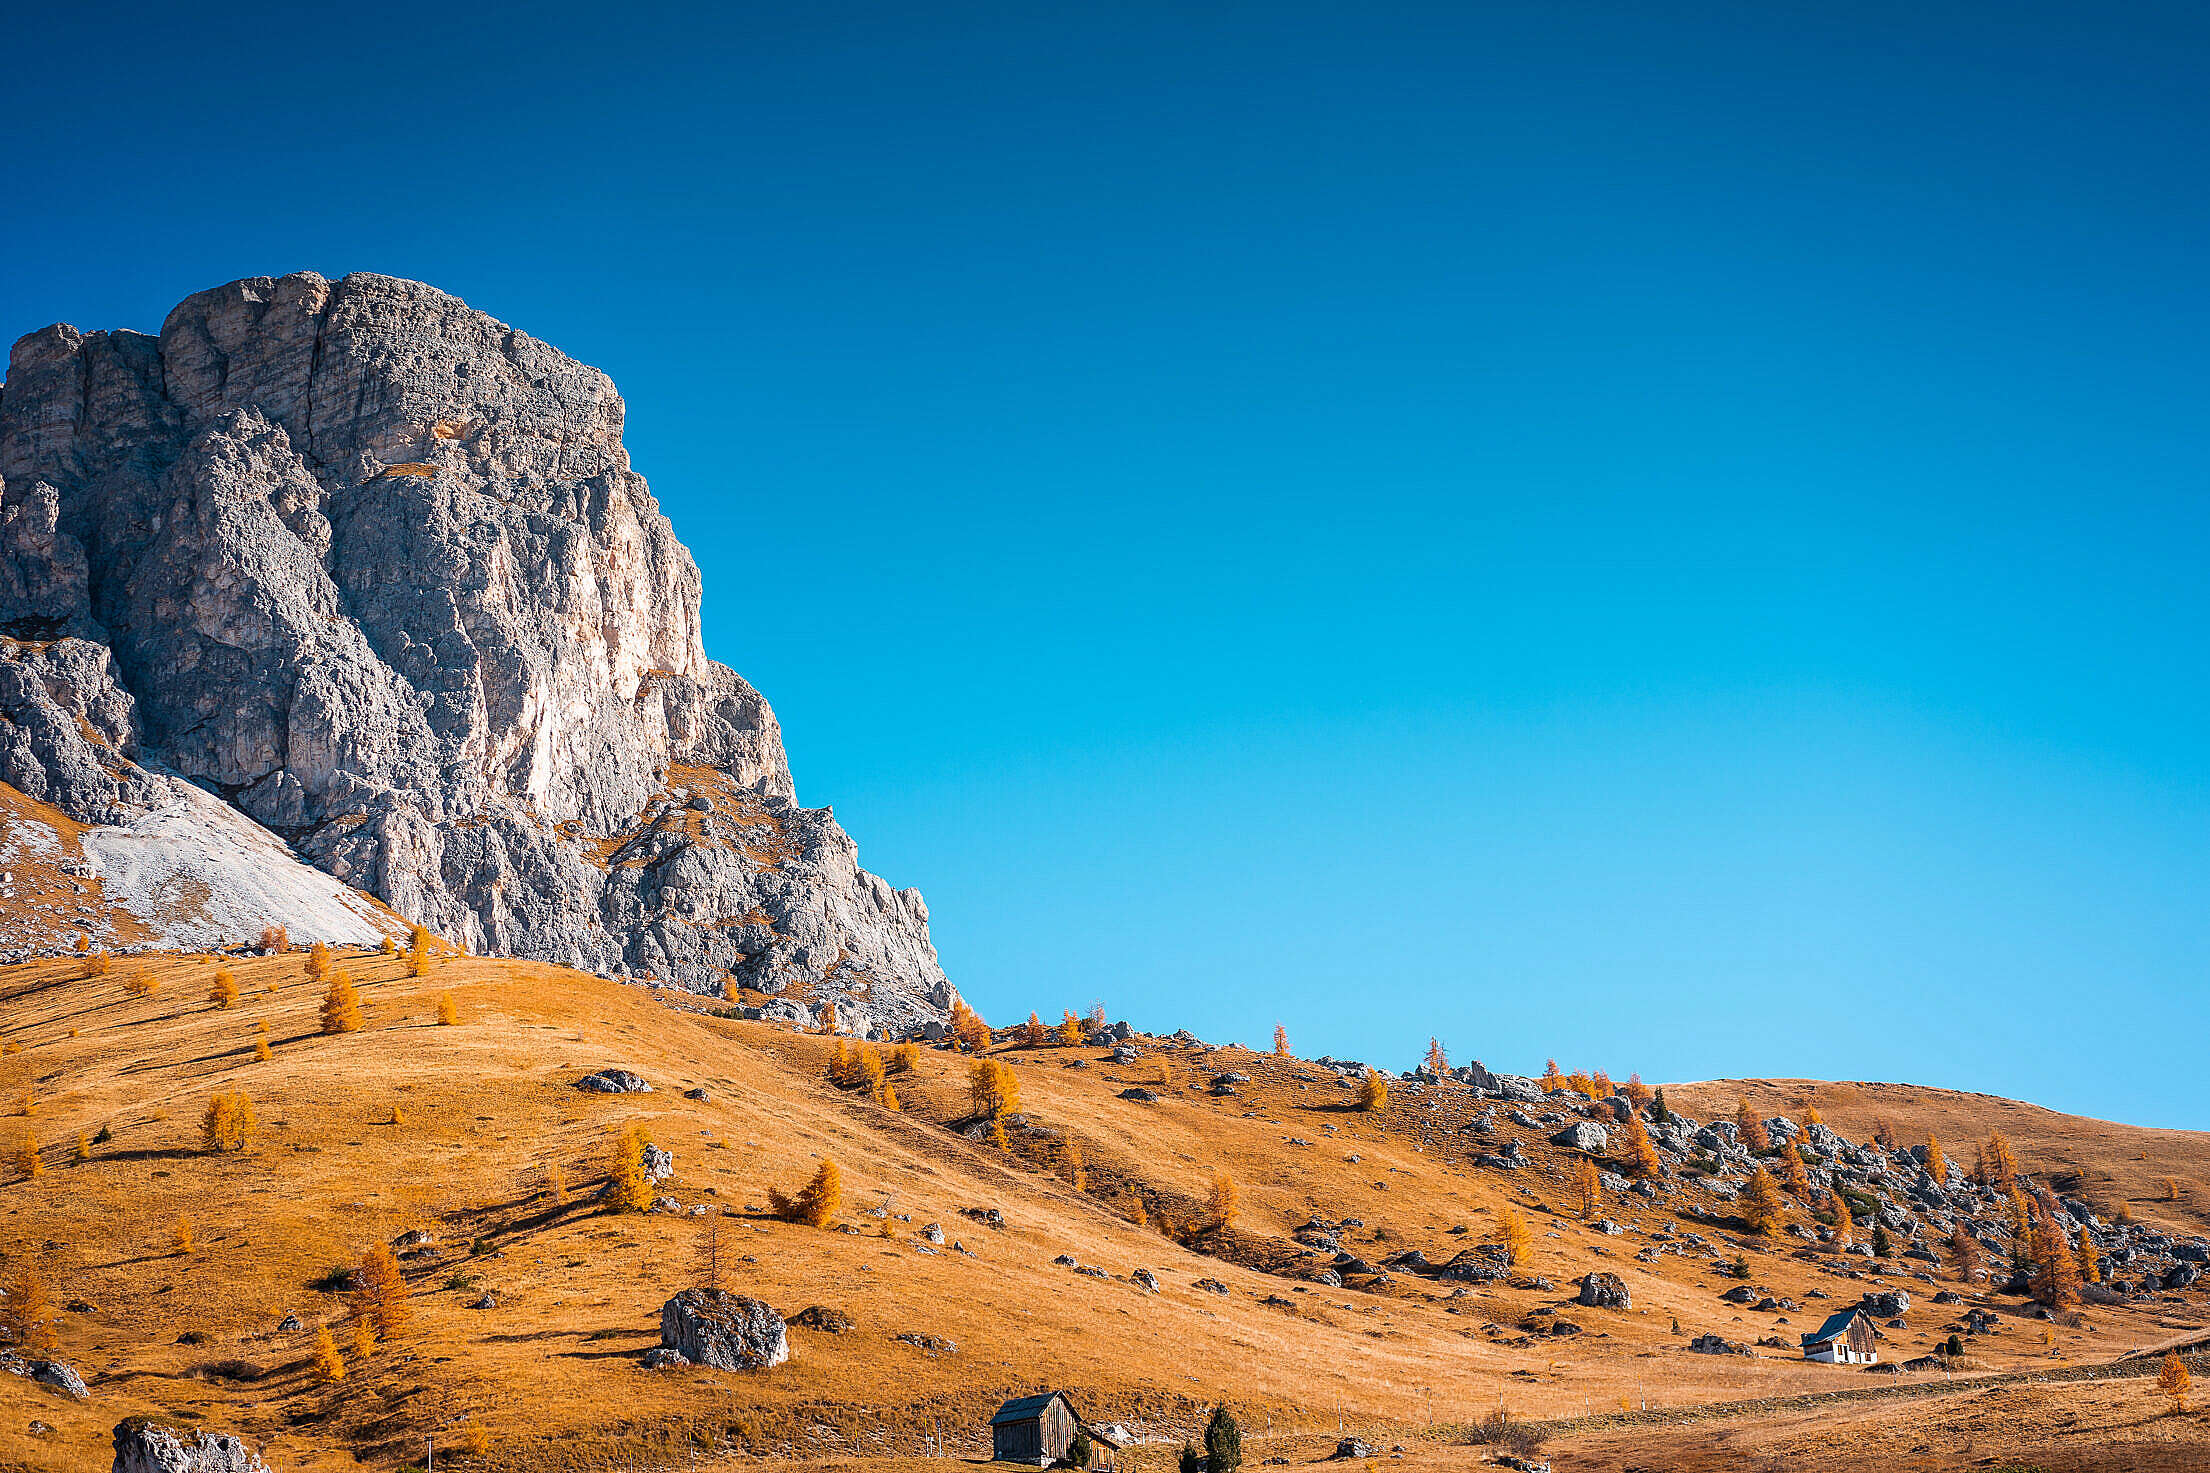 Beautiful View of Mount Gusela with Cloudless Sky in Italy Free Stock Photo